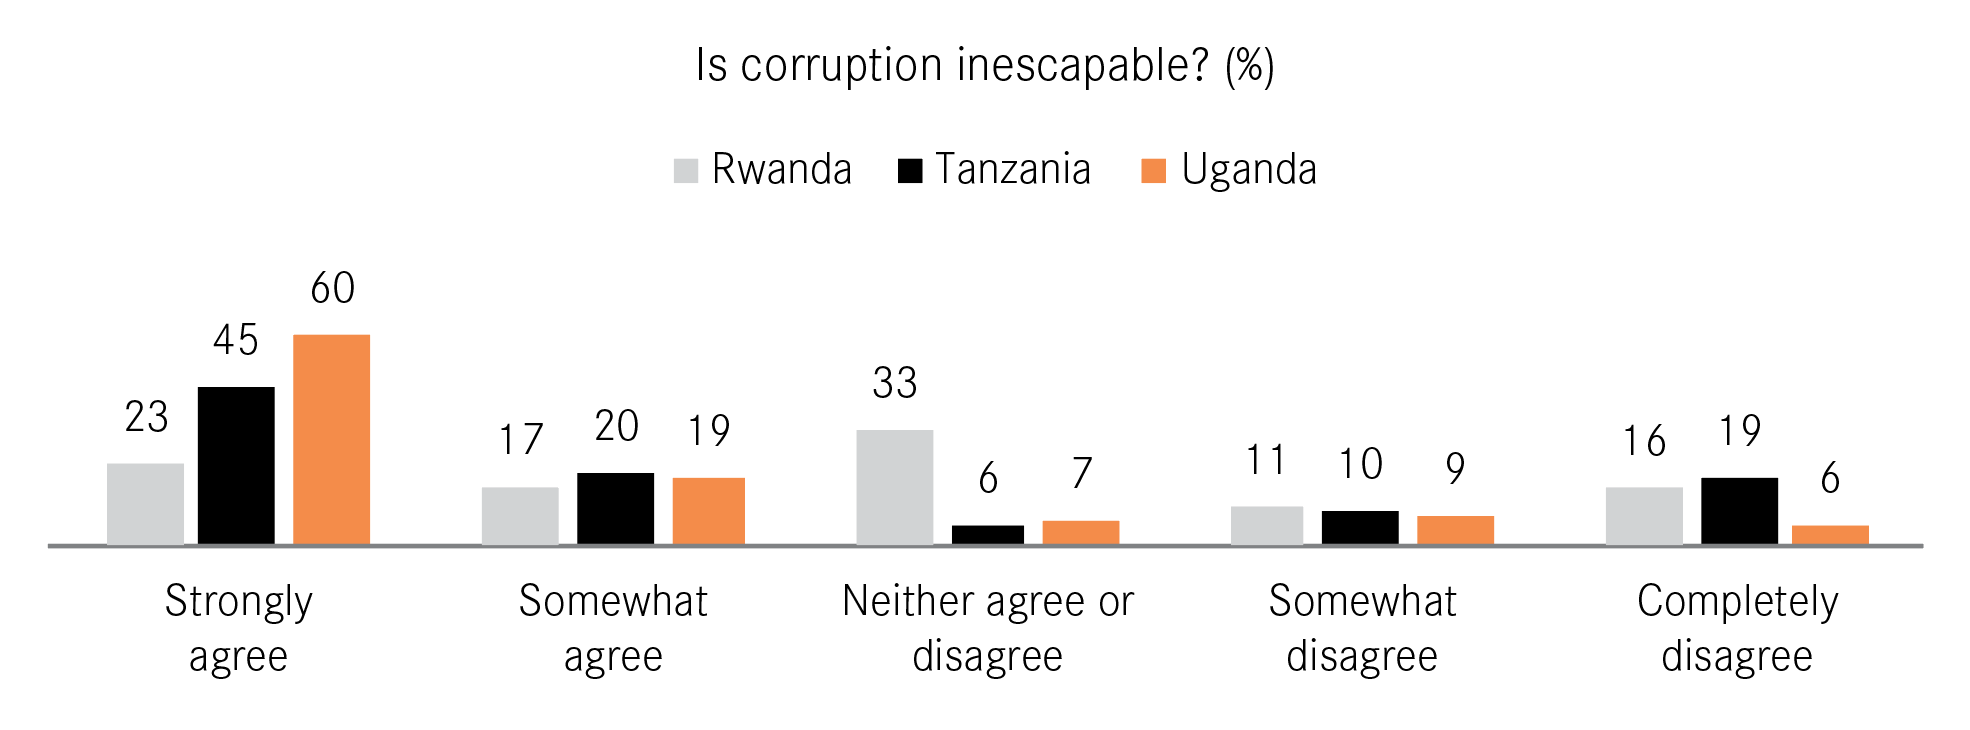 Figure 1: Is corruption inescapable in Rwanda, Tanzania and Uganda?